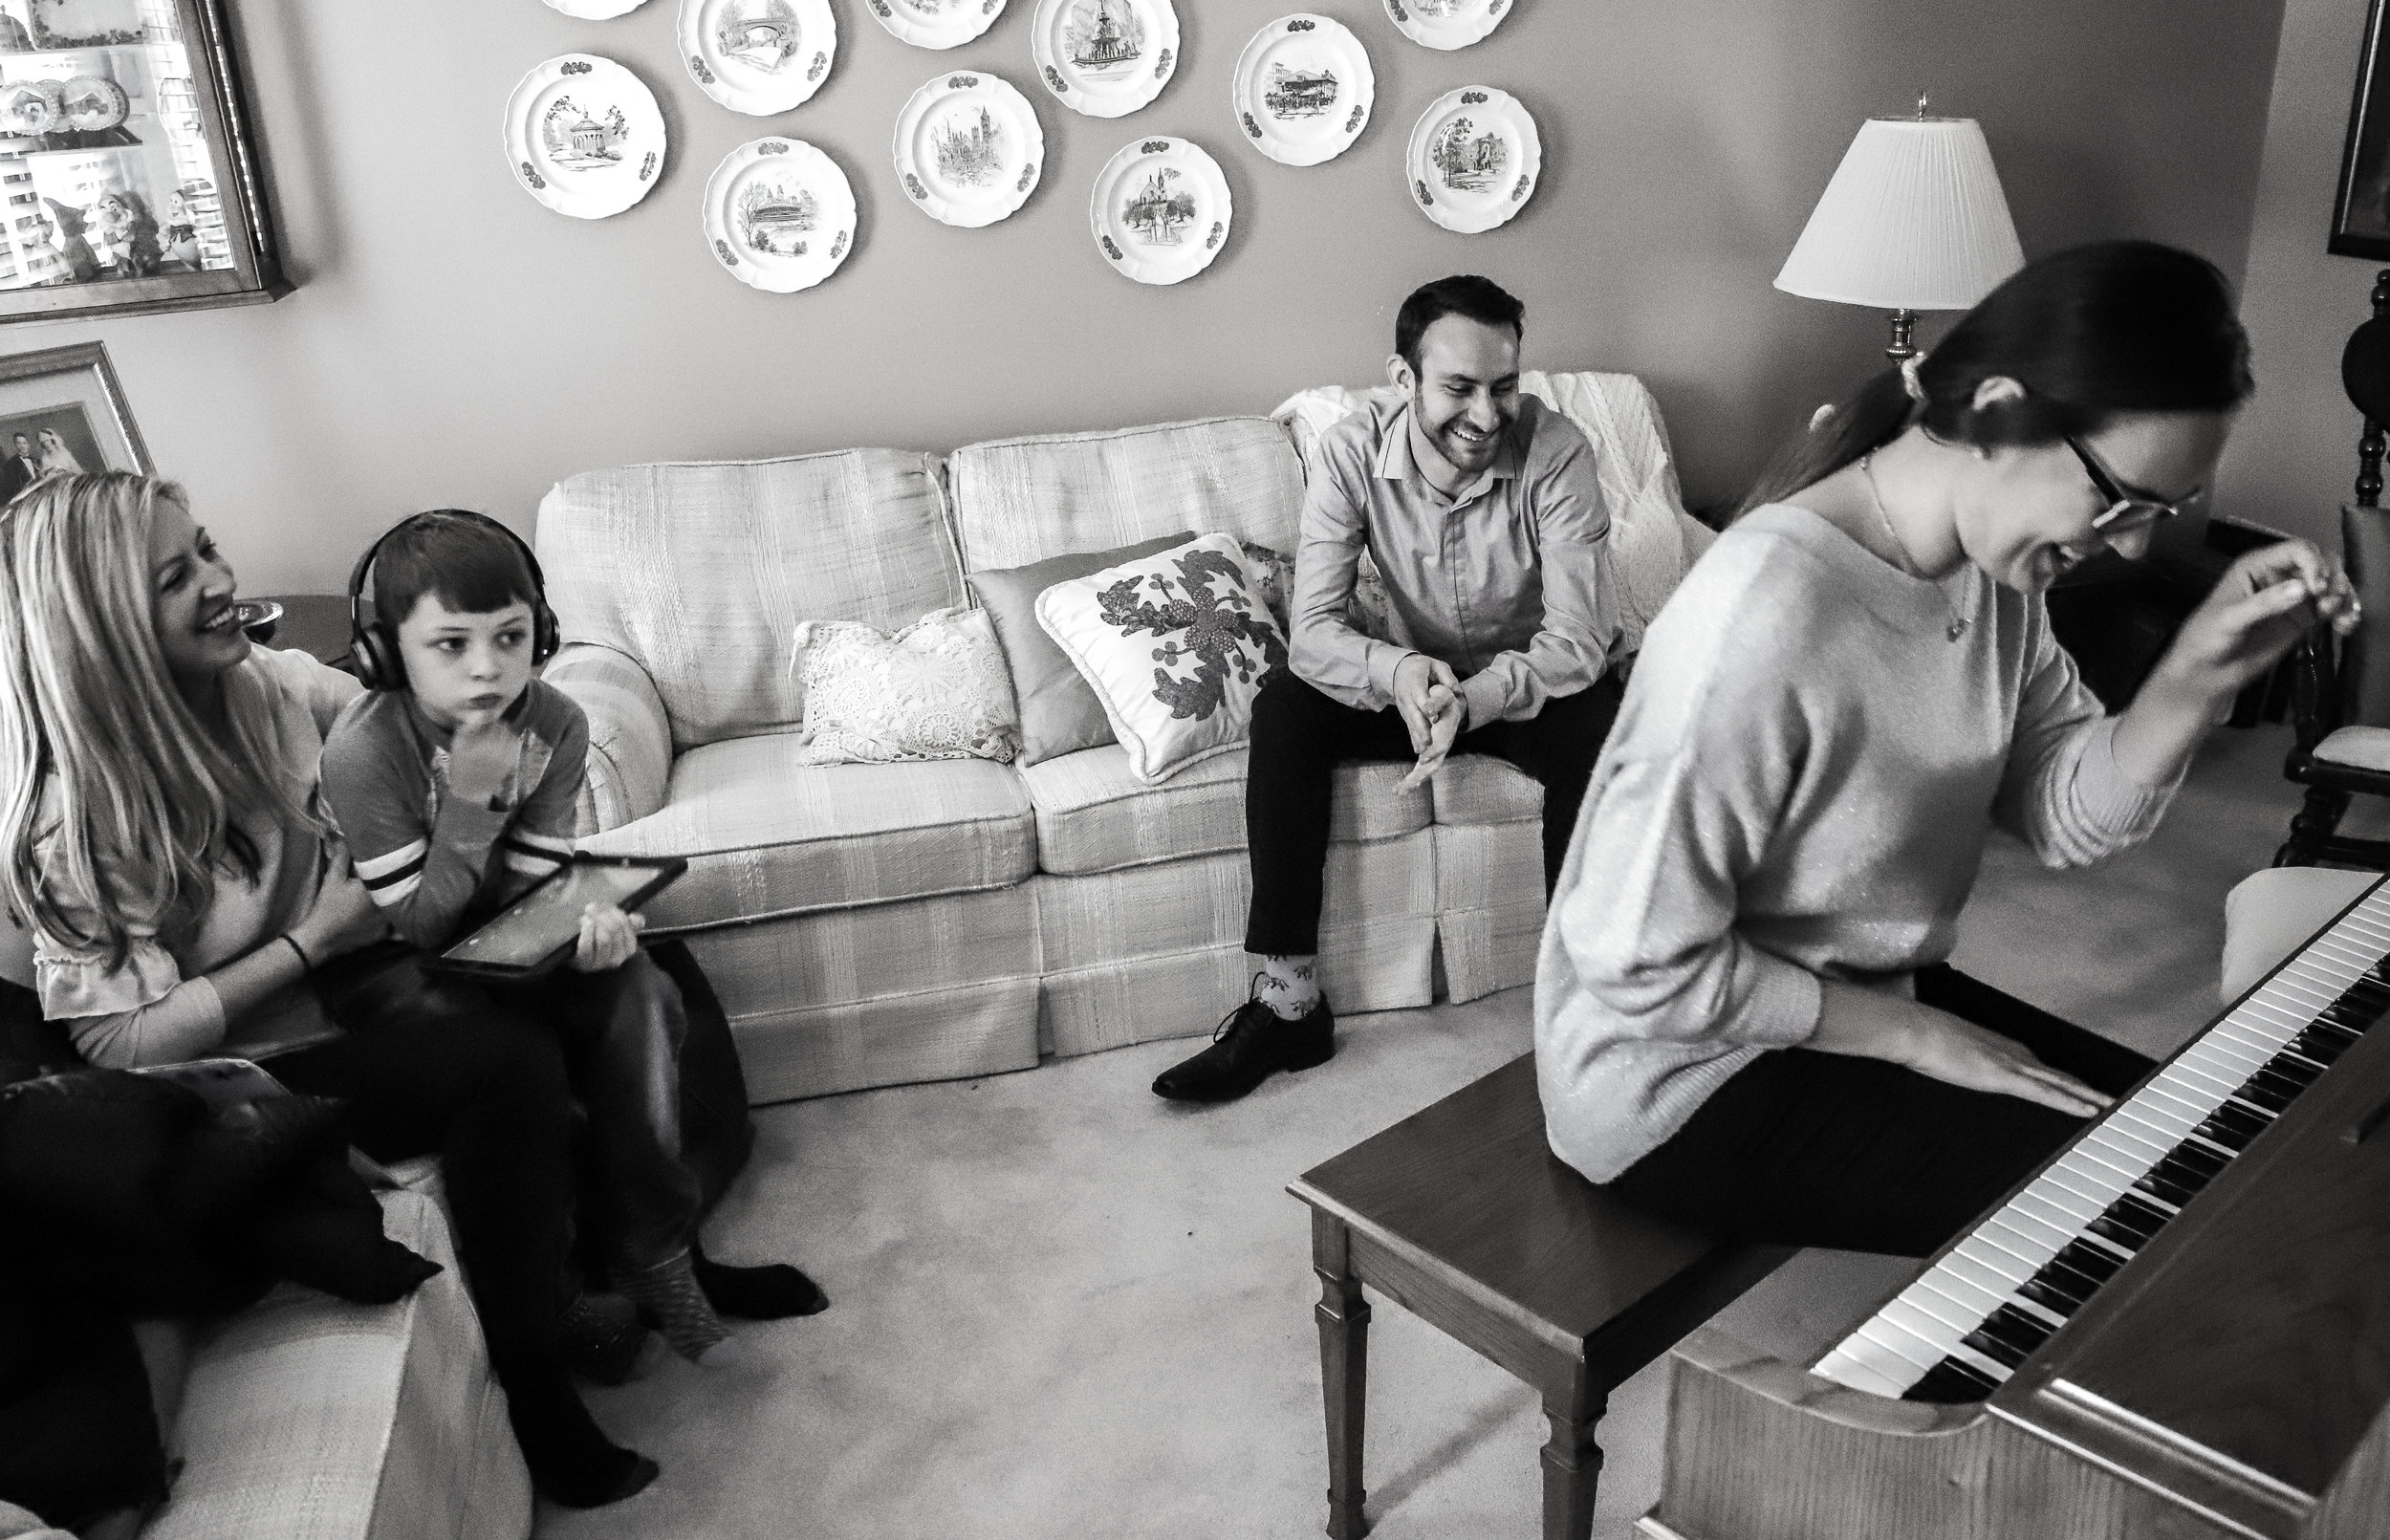 Luke Burke and his mom Cindy Burke listen to Simon Barrad and Kseniia Barrad practice their music. Luke was one of the writers for the Lynx Project's 2018 Cincinnati concert. The Lynx Project is a nonprofit organization that brings musicians and composers together to perform poems written by young writers with non-verbal autism.